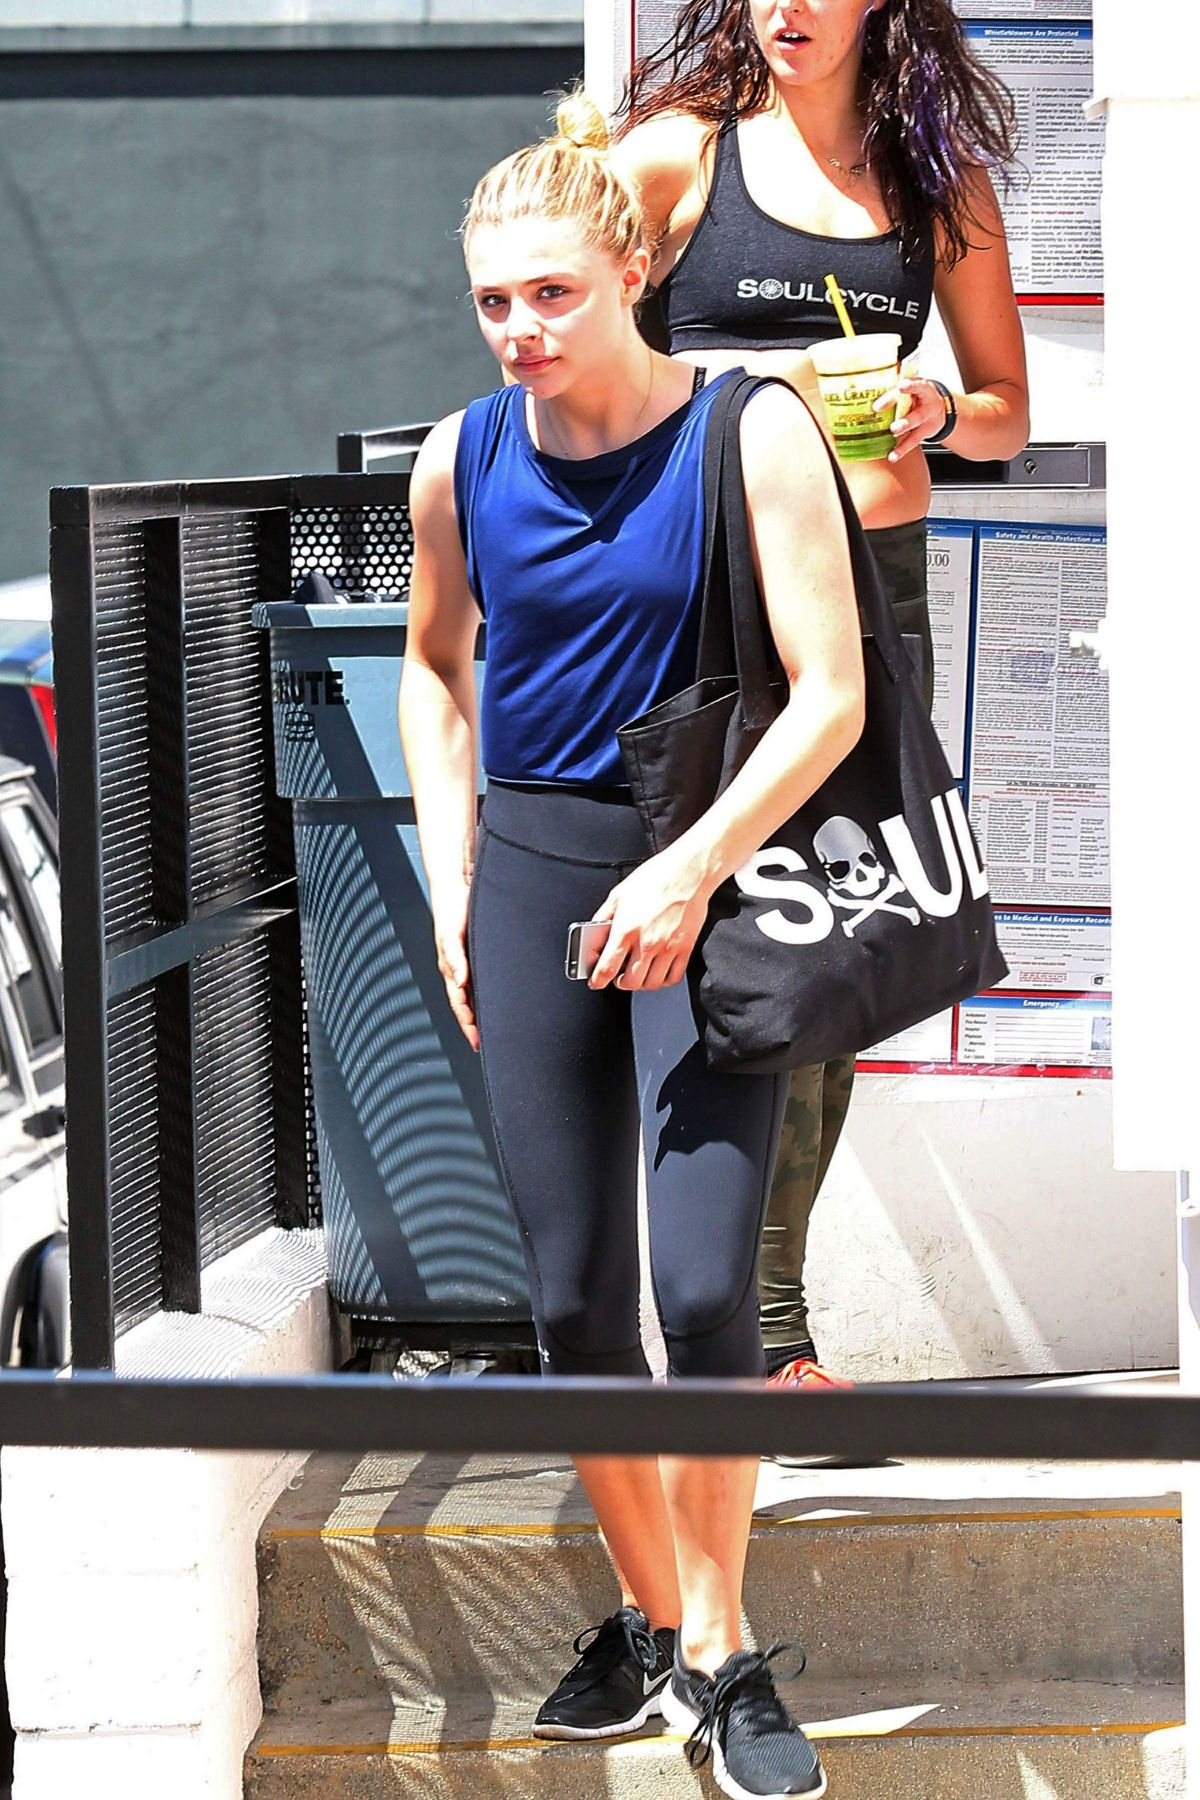 picture Chloe grace moretz in spandex leaving soul cycle in new york city